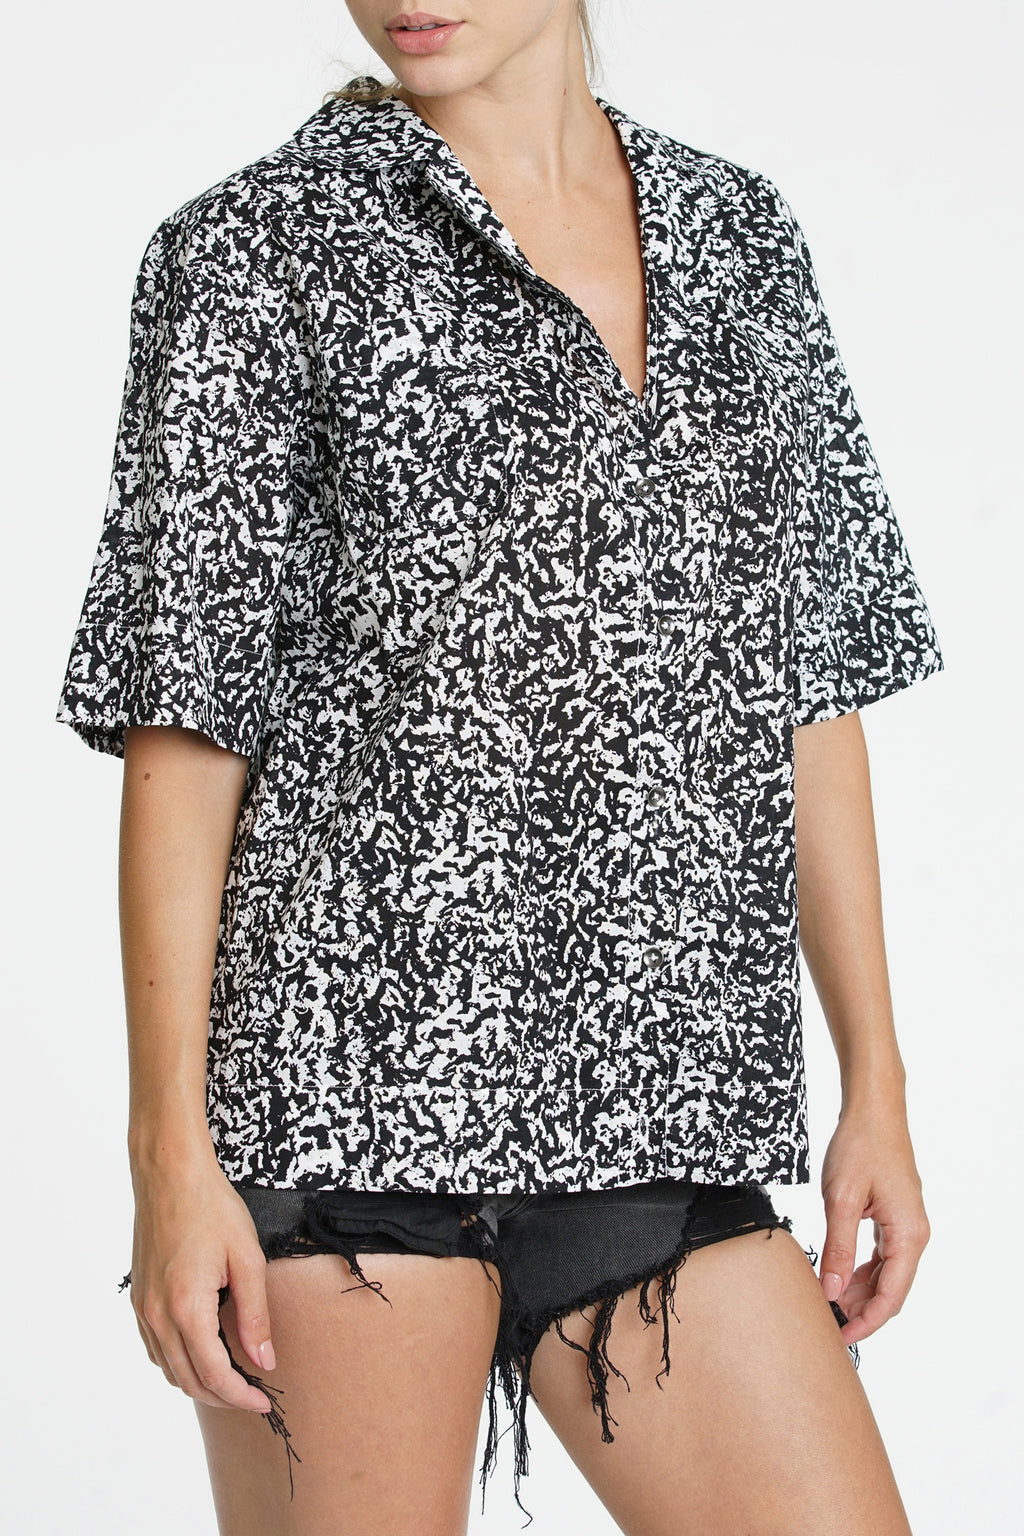 Lucy Pajama Shirt - White Noise